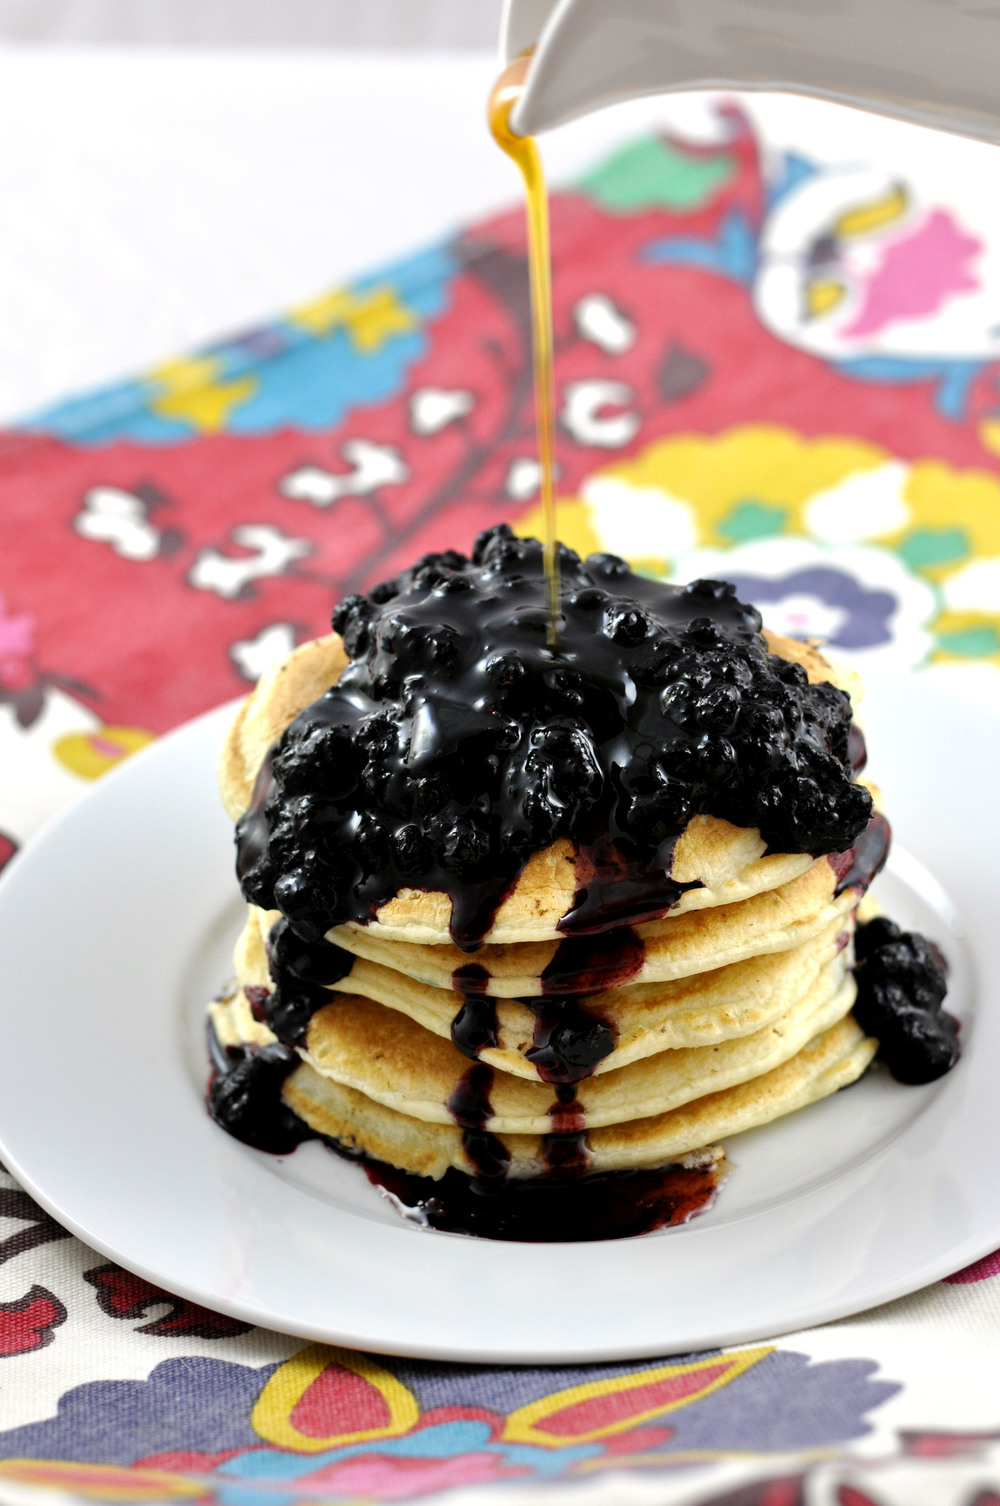 Coconut Almond Milk Pancakes with Blueberry Compote | Shiny Happy Bright